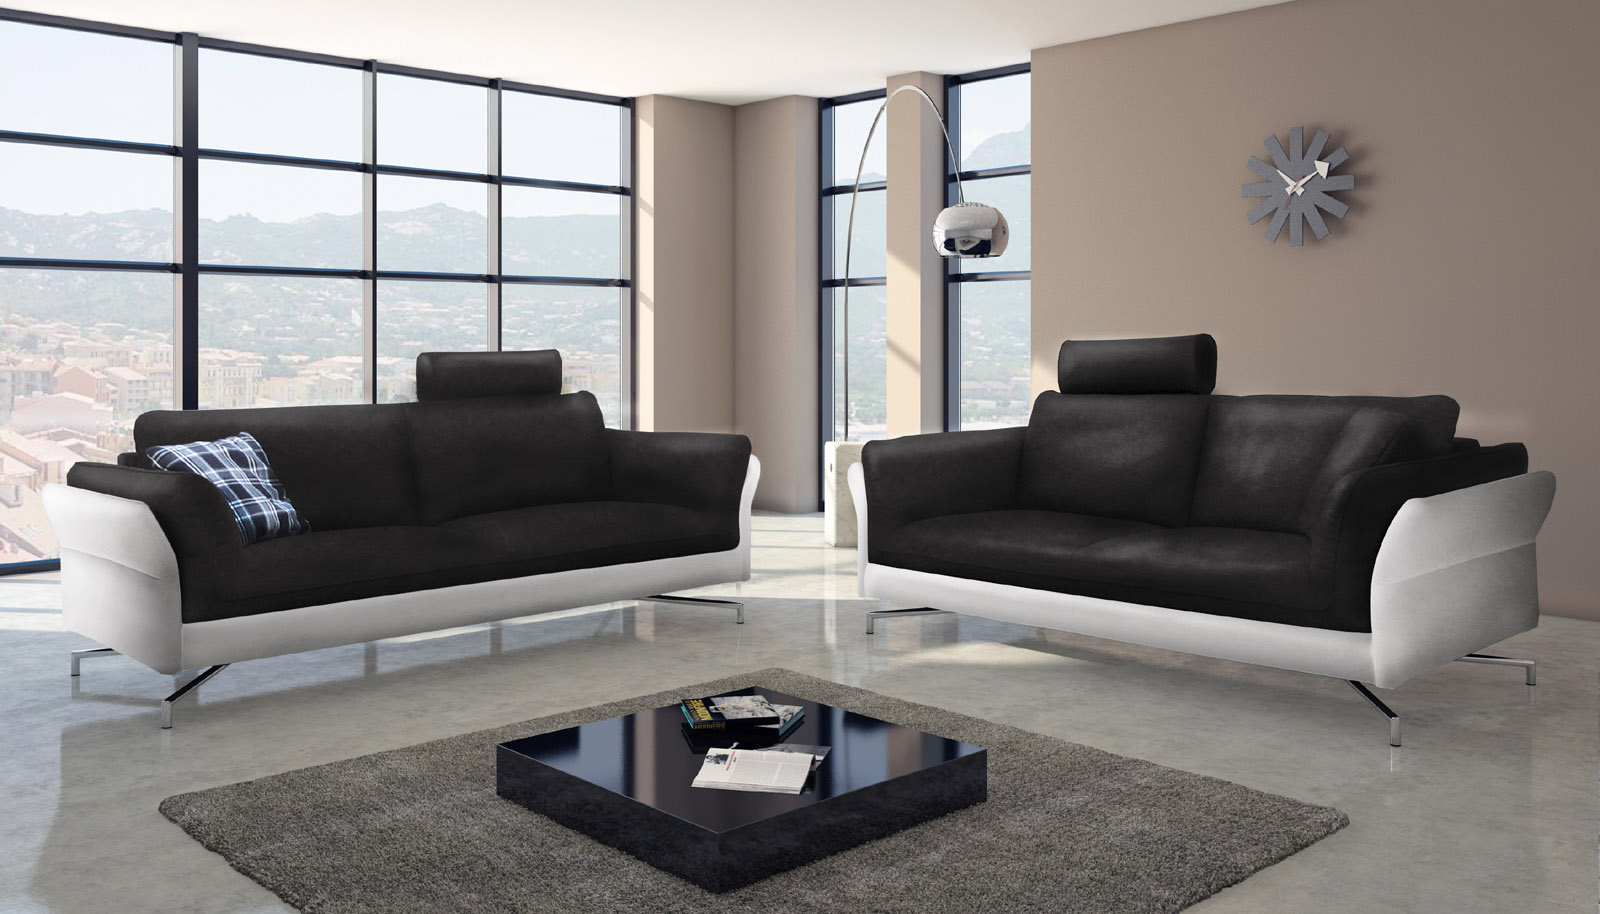 sam design sofa garnitur 2 3 sitzer schwarz wei vivano auf lager. Black Bedroom Furniture Sets. Home Design Ideas